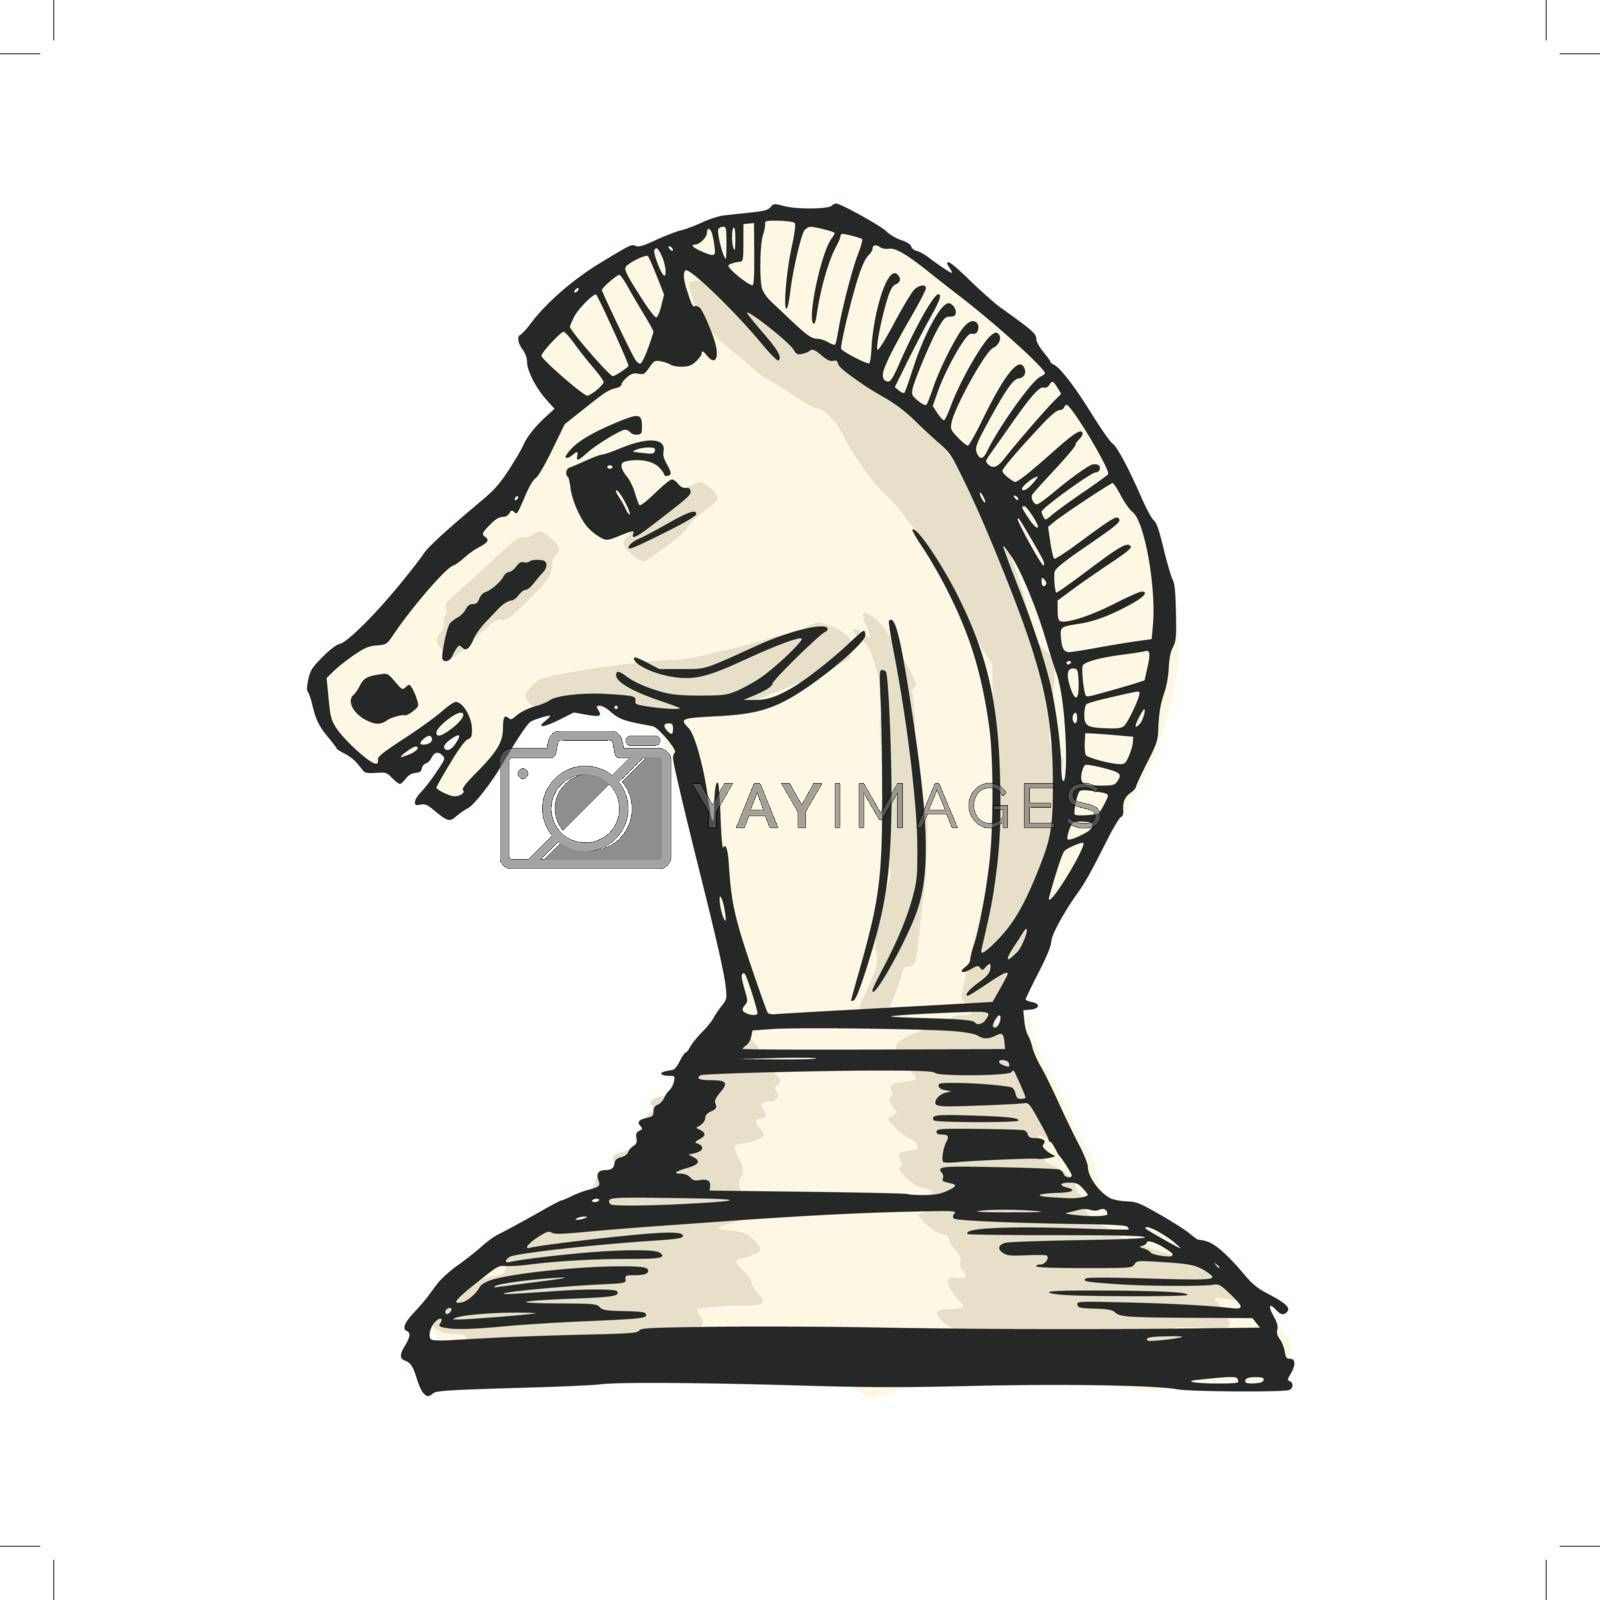 hand drawn, sketch, cartoon illustration of a chess figure